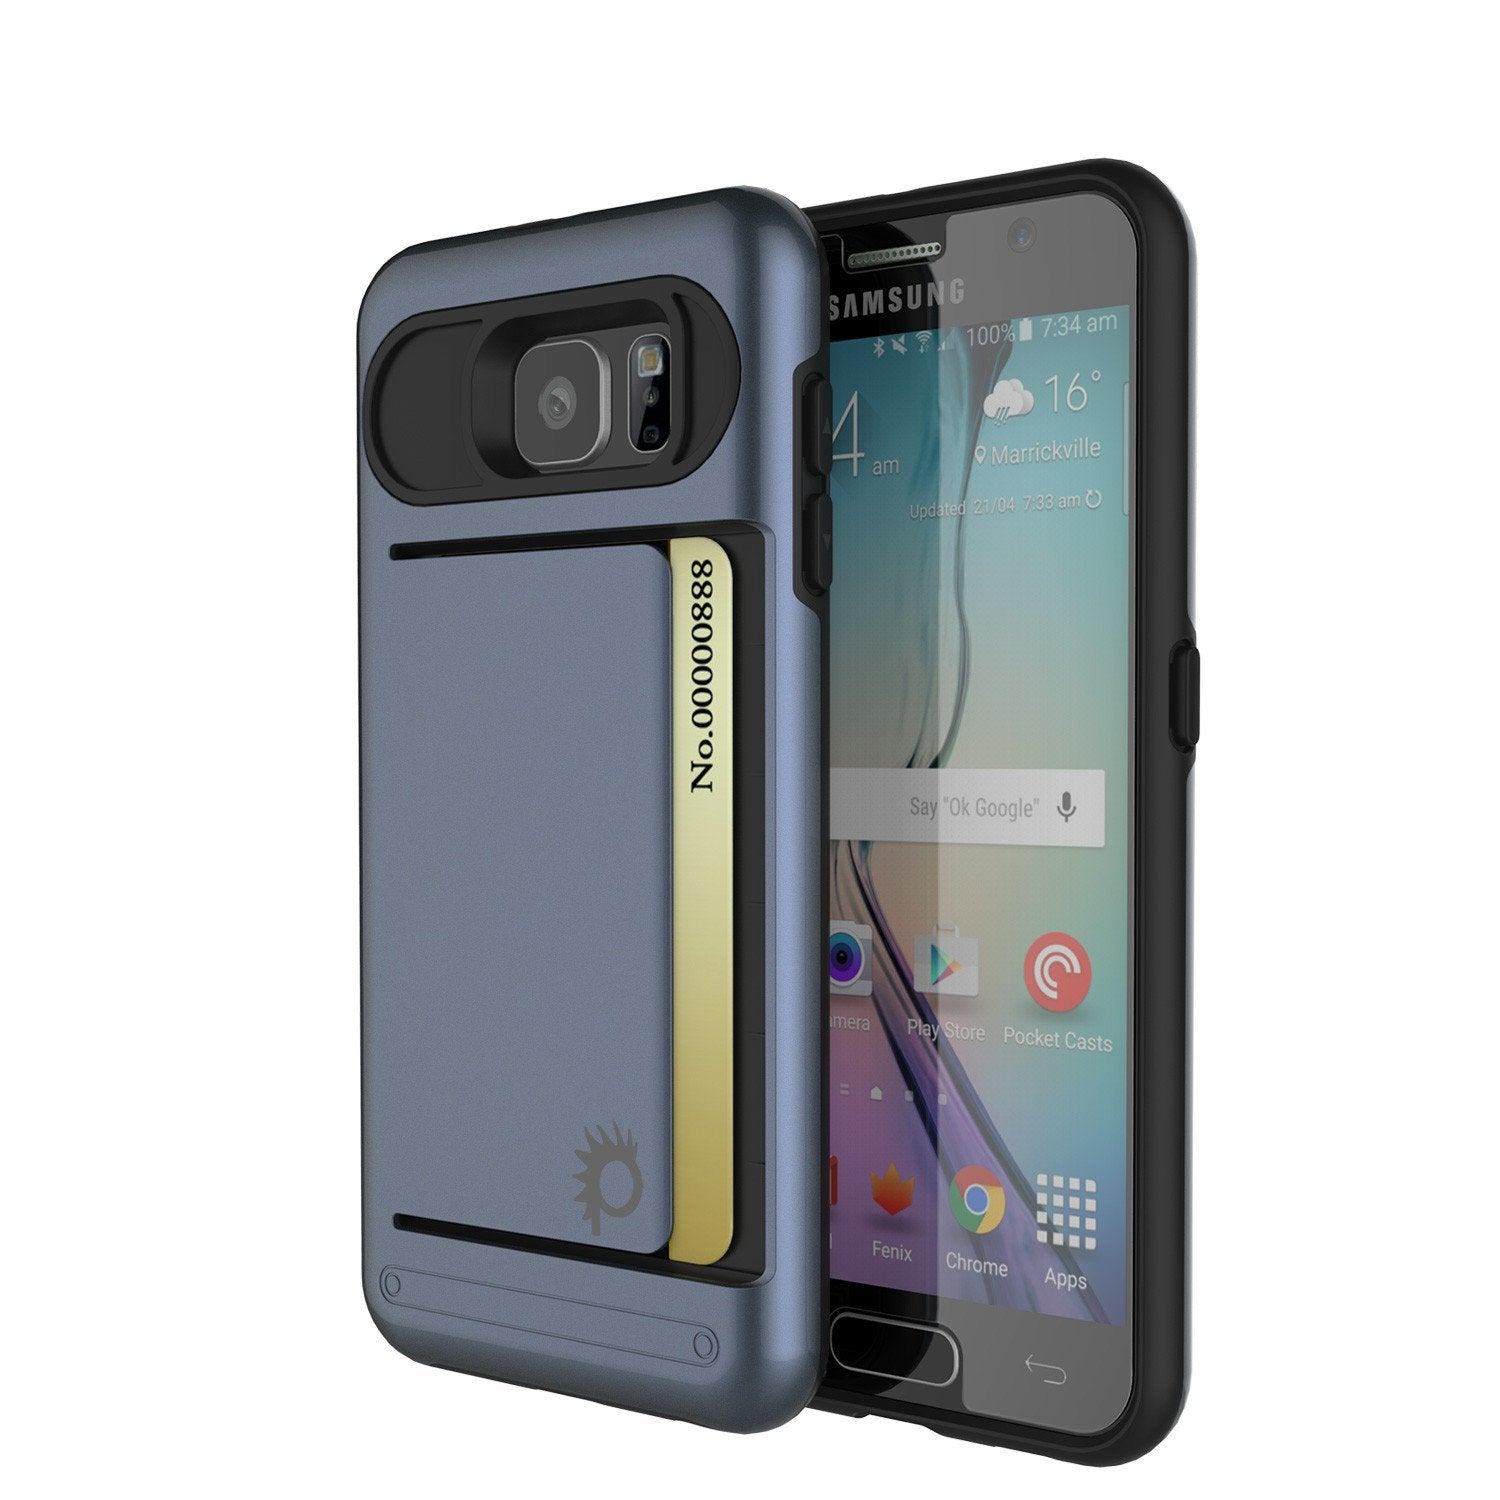 Galaxy S6 EDGE Case PunkCase CLUTCH Navy Series Slim Armor Soft Cover Case w/ Screen Protector